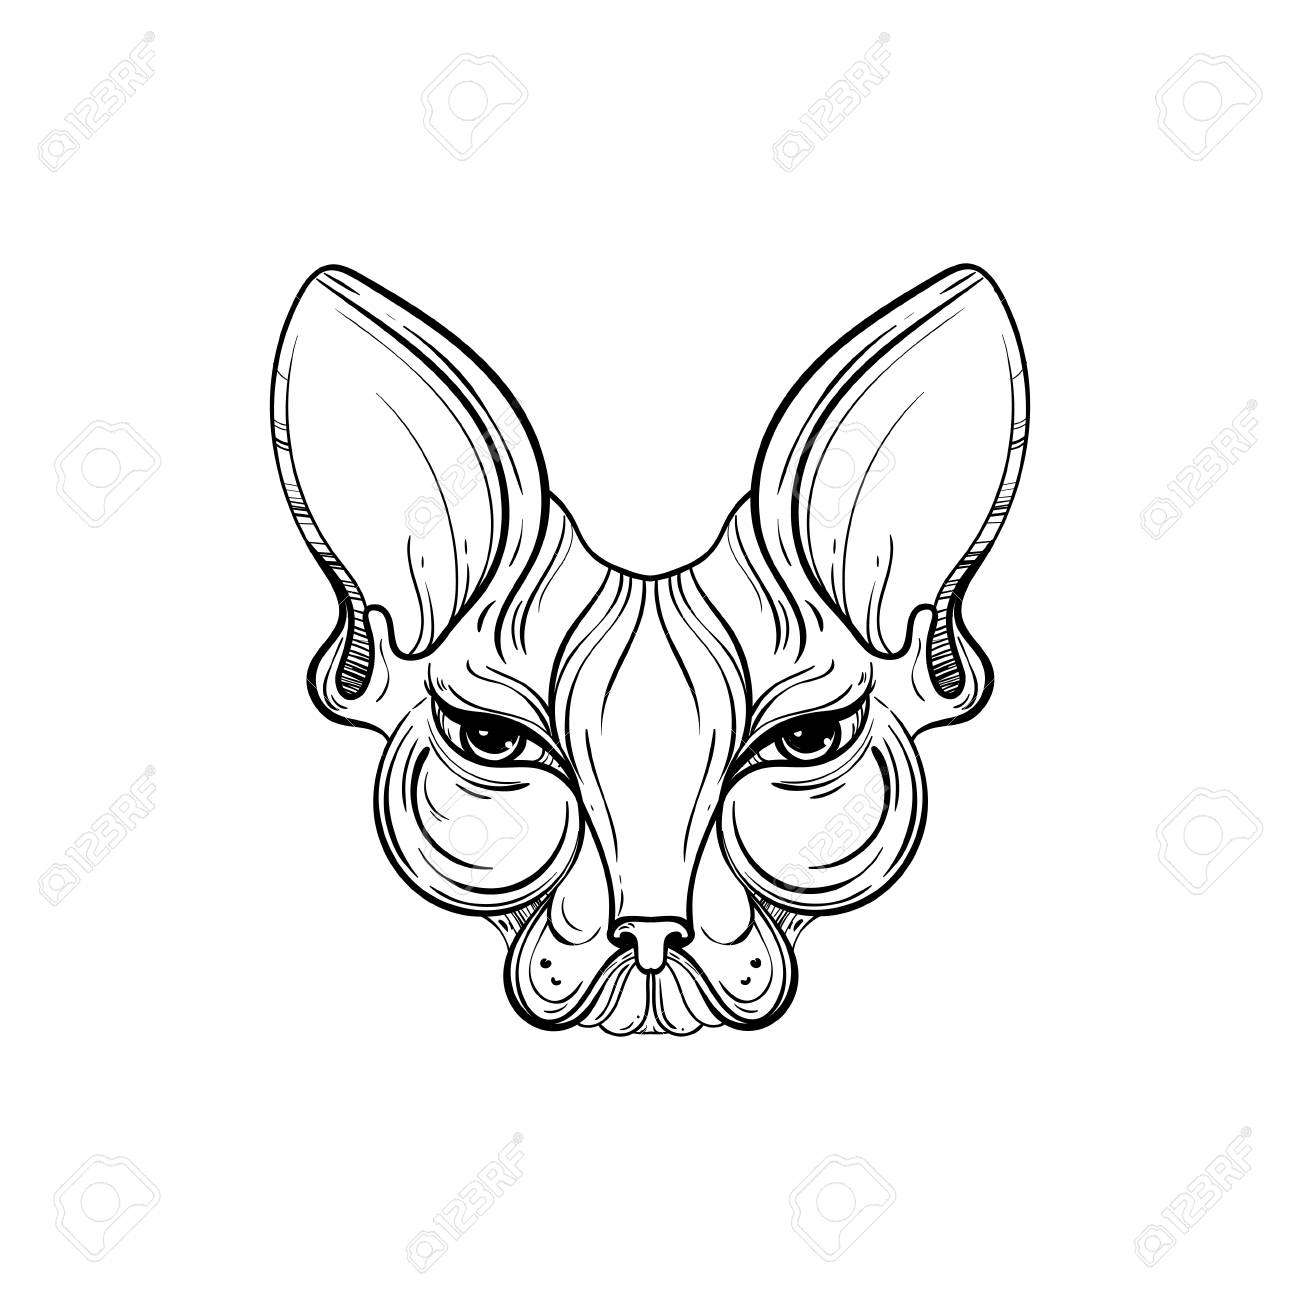 sphynx cat face vector illustration tattoo template in monochrome graphic style vintage mascot design